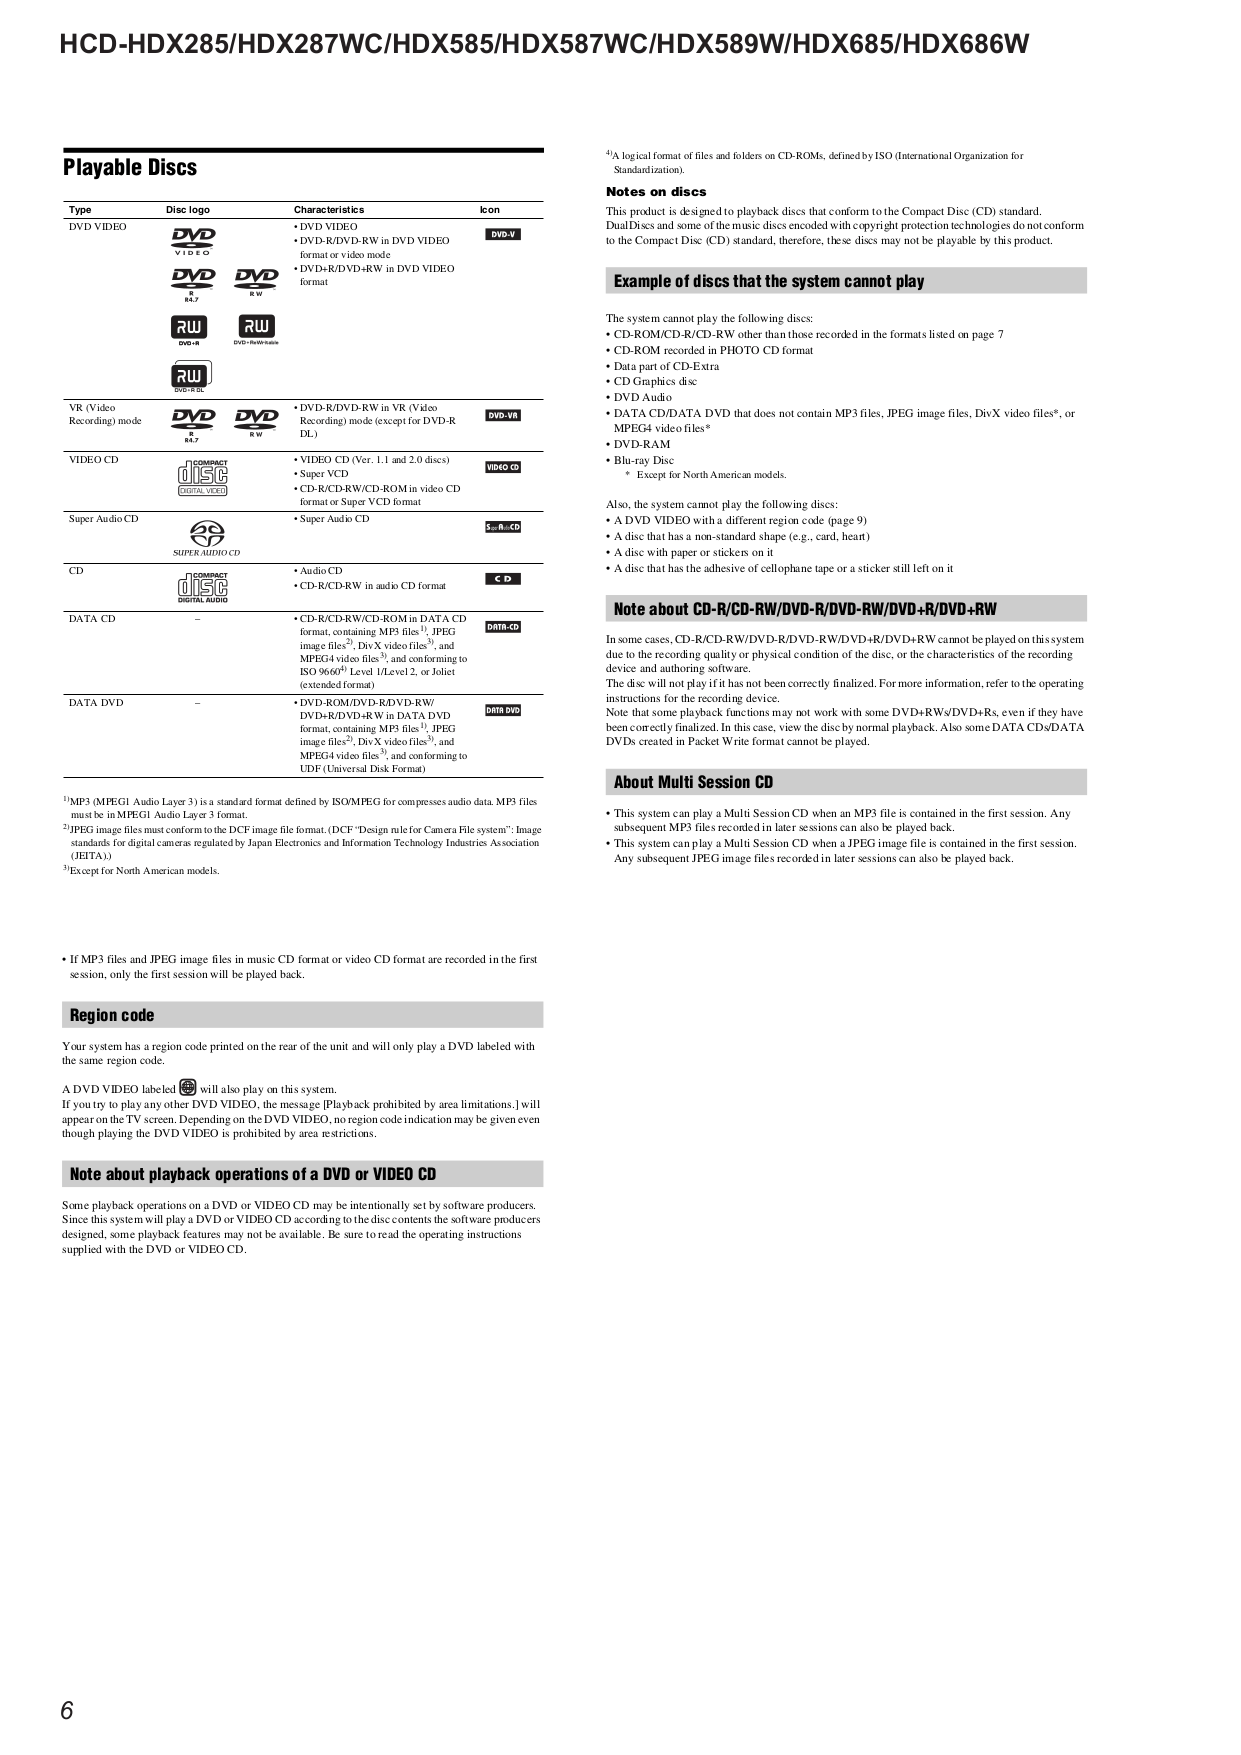 PDF manual for Sony Home Theater BRAVIA DAV-HDX589W